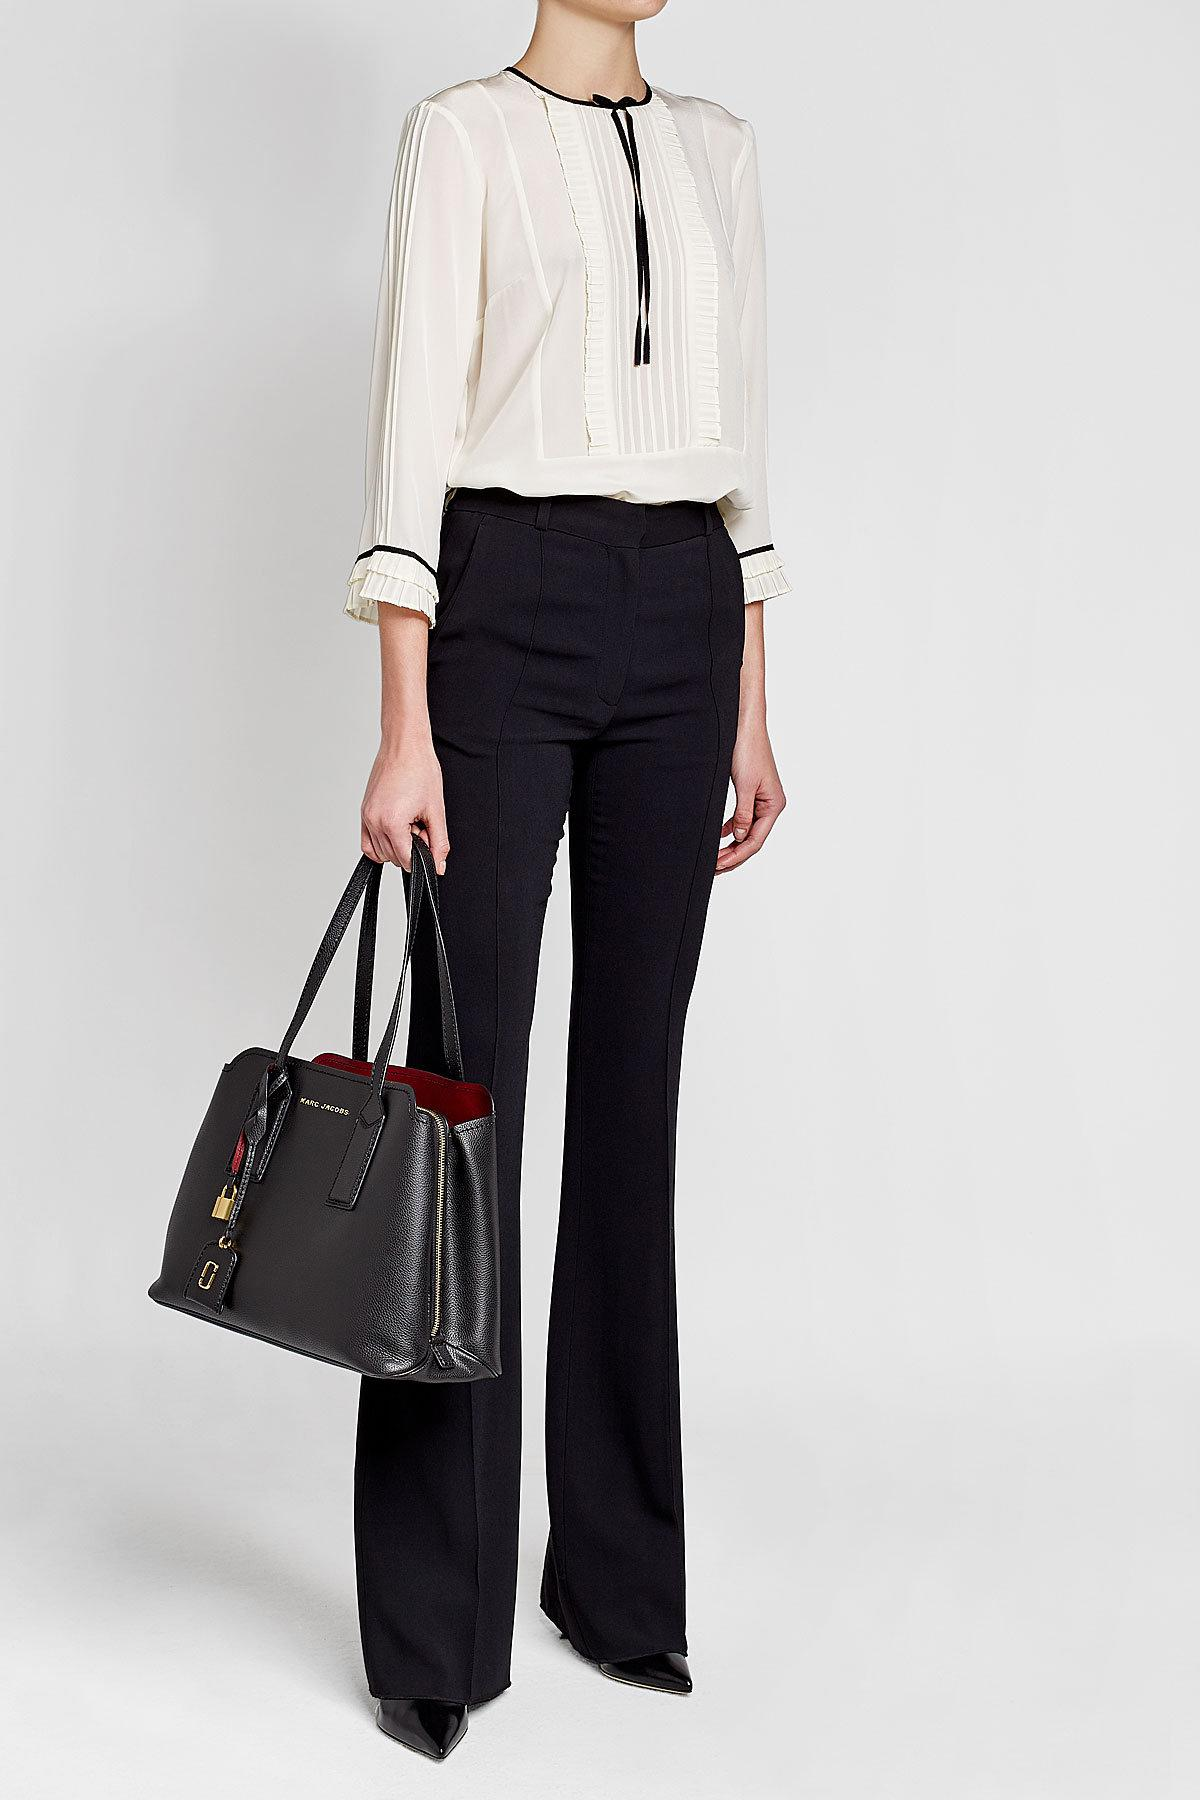 c2294e63e38f Lyst - Marc Jacobs The Editor Leather Tote in Black